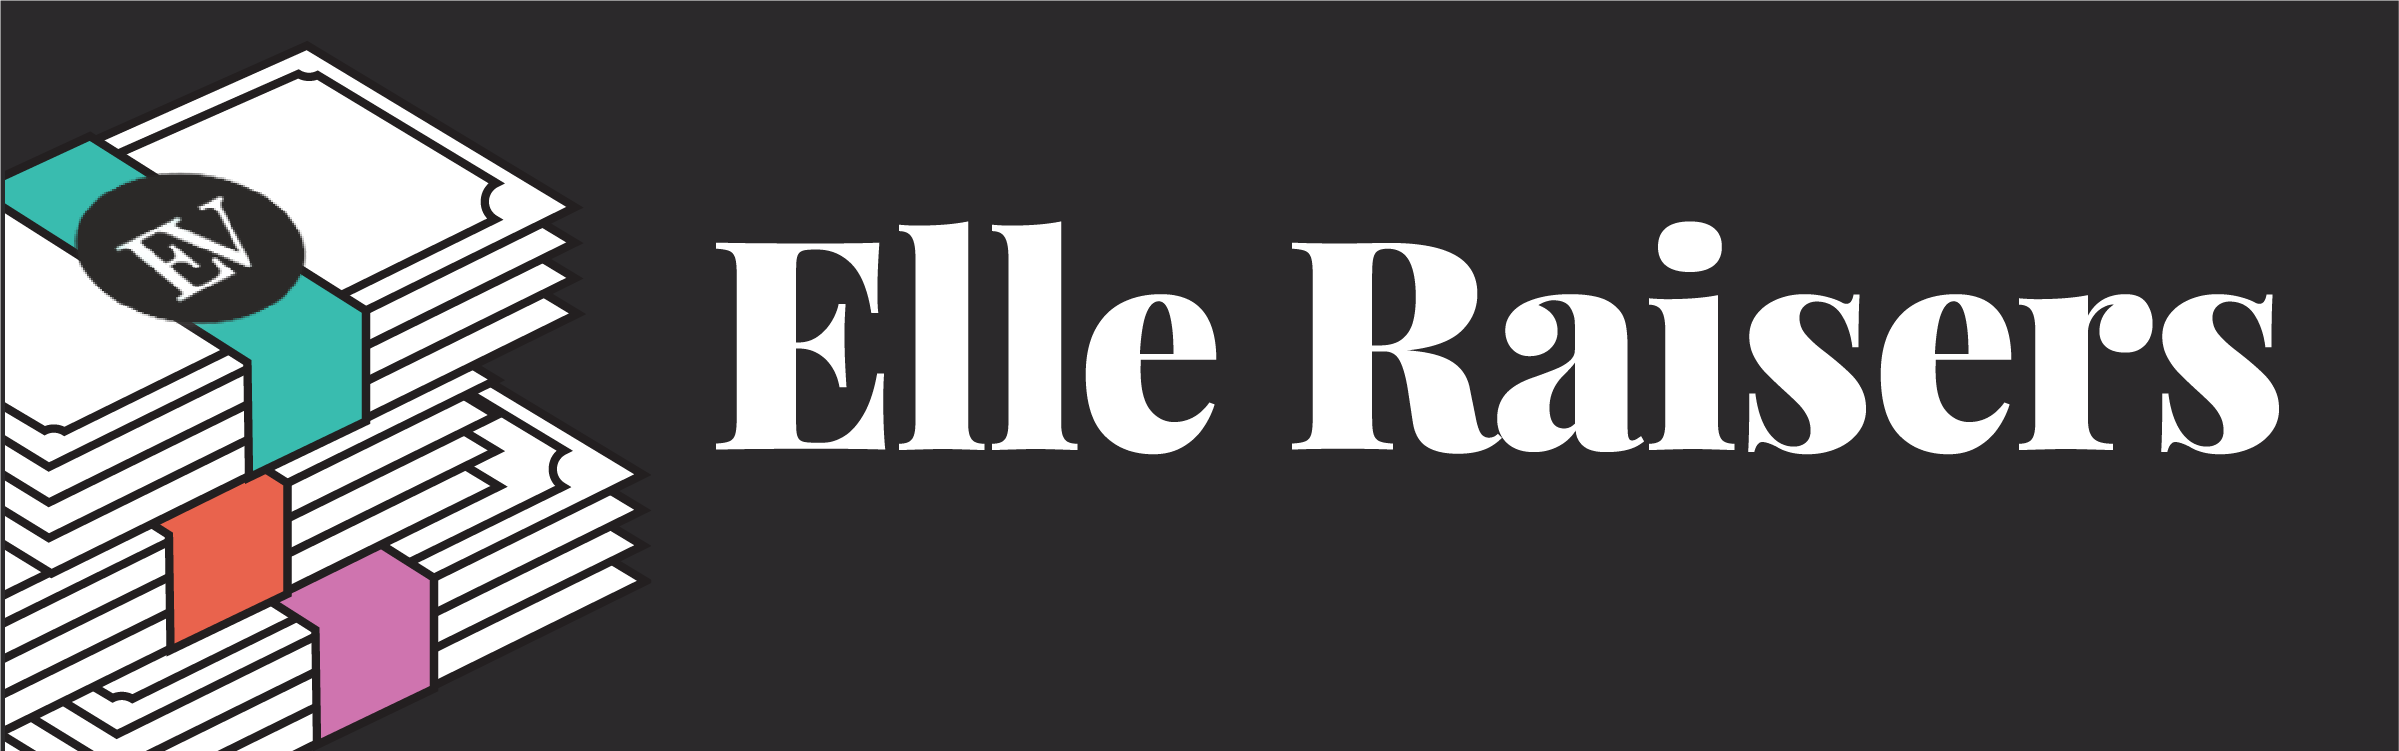 Let's Raise Some Elle